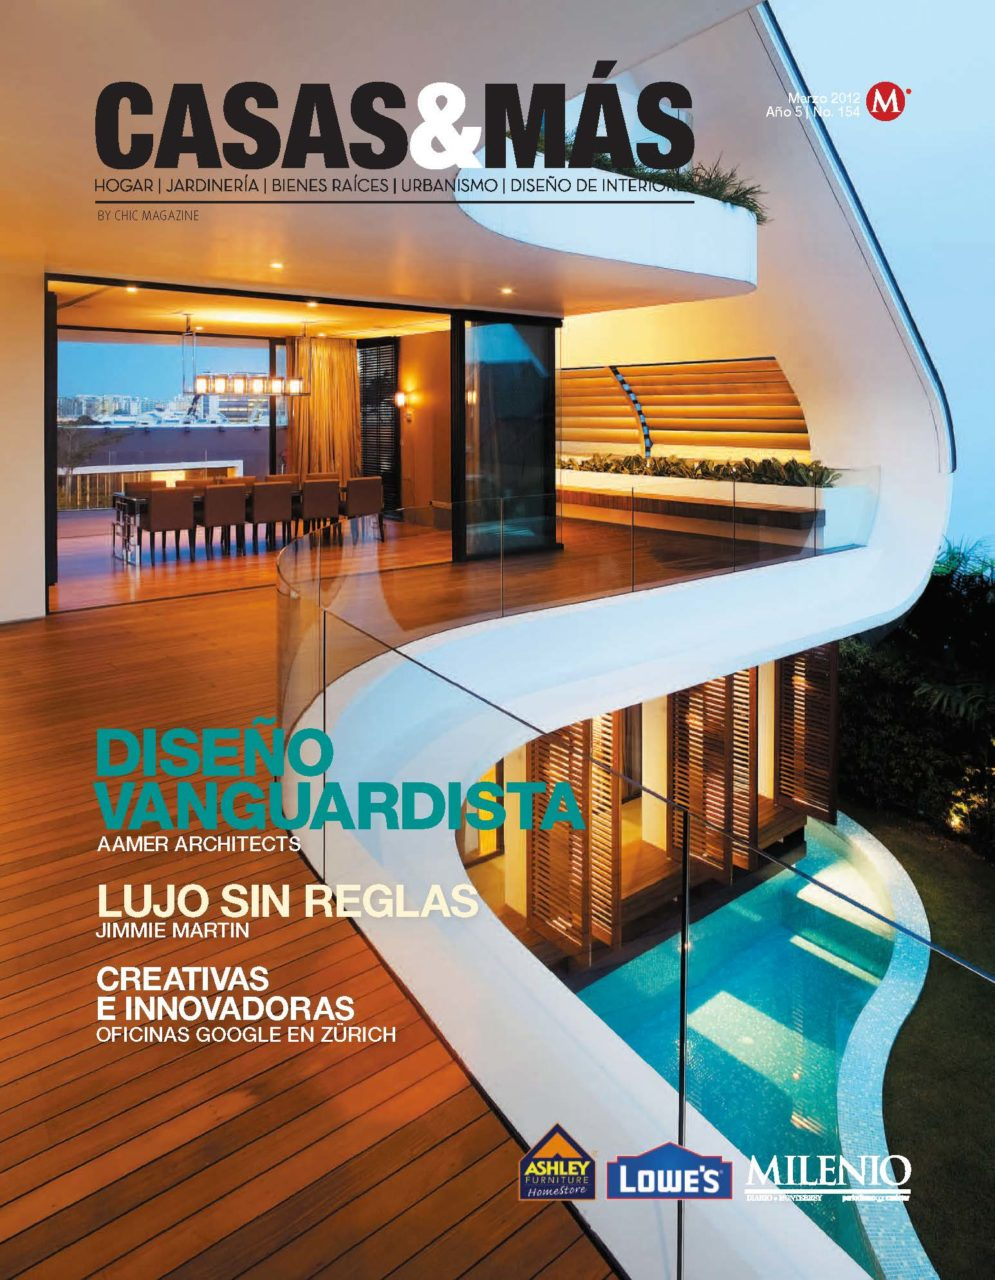 https://www.saota.com/wp-content/uploads/2018/01/2012_March_CasasMas_SAOTA_Page_1.jpg